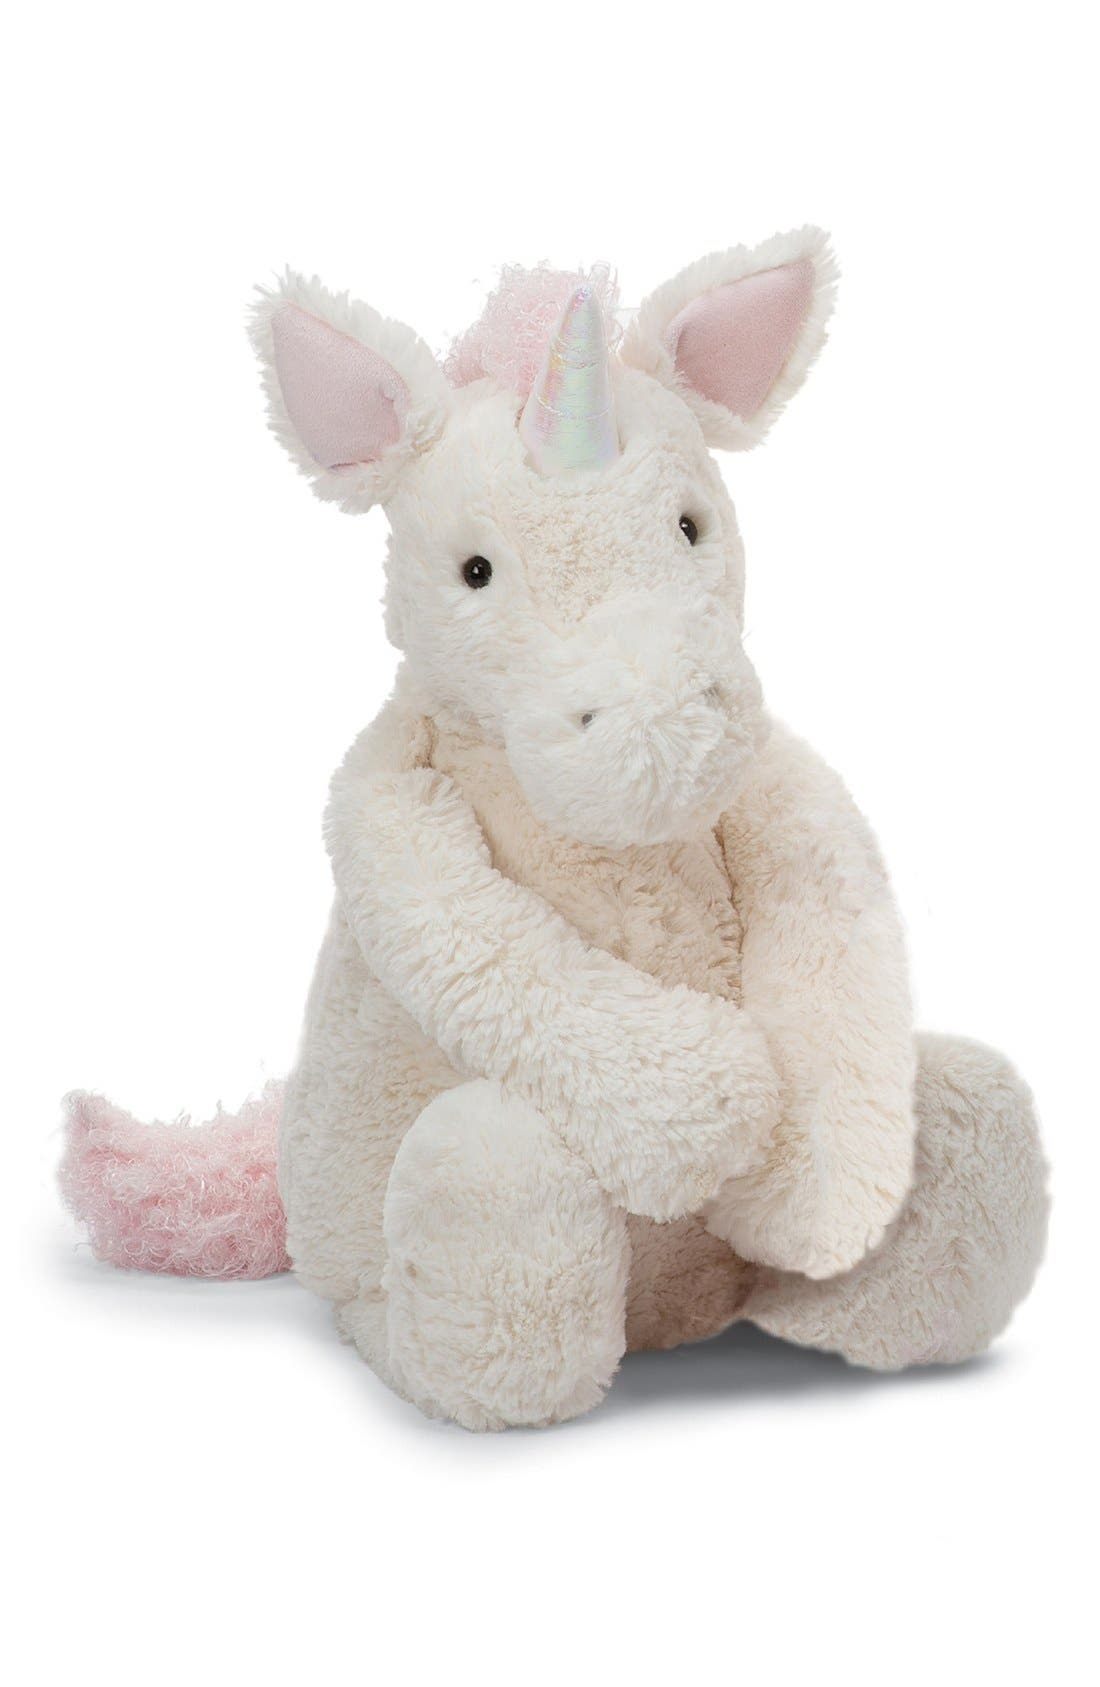 Jellycat 'Really Big Bashful Unicorn' Stuffed Animal